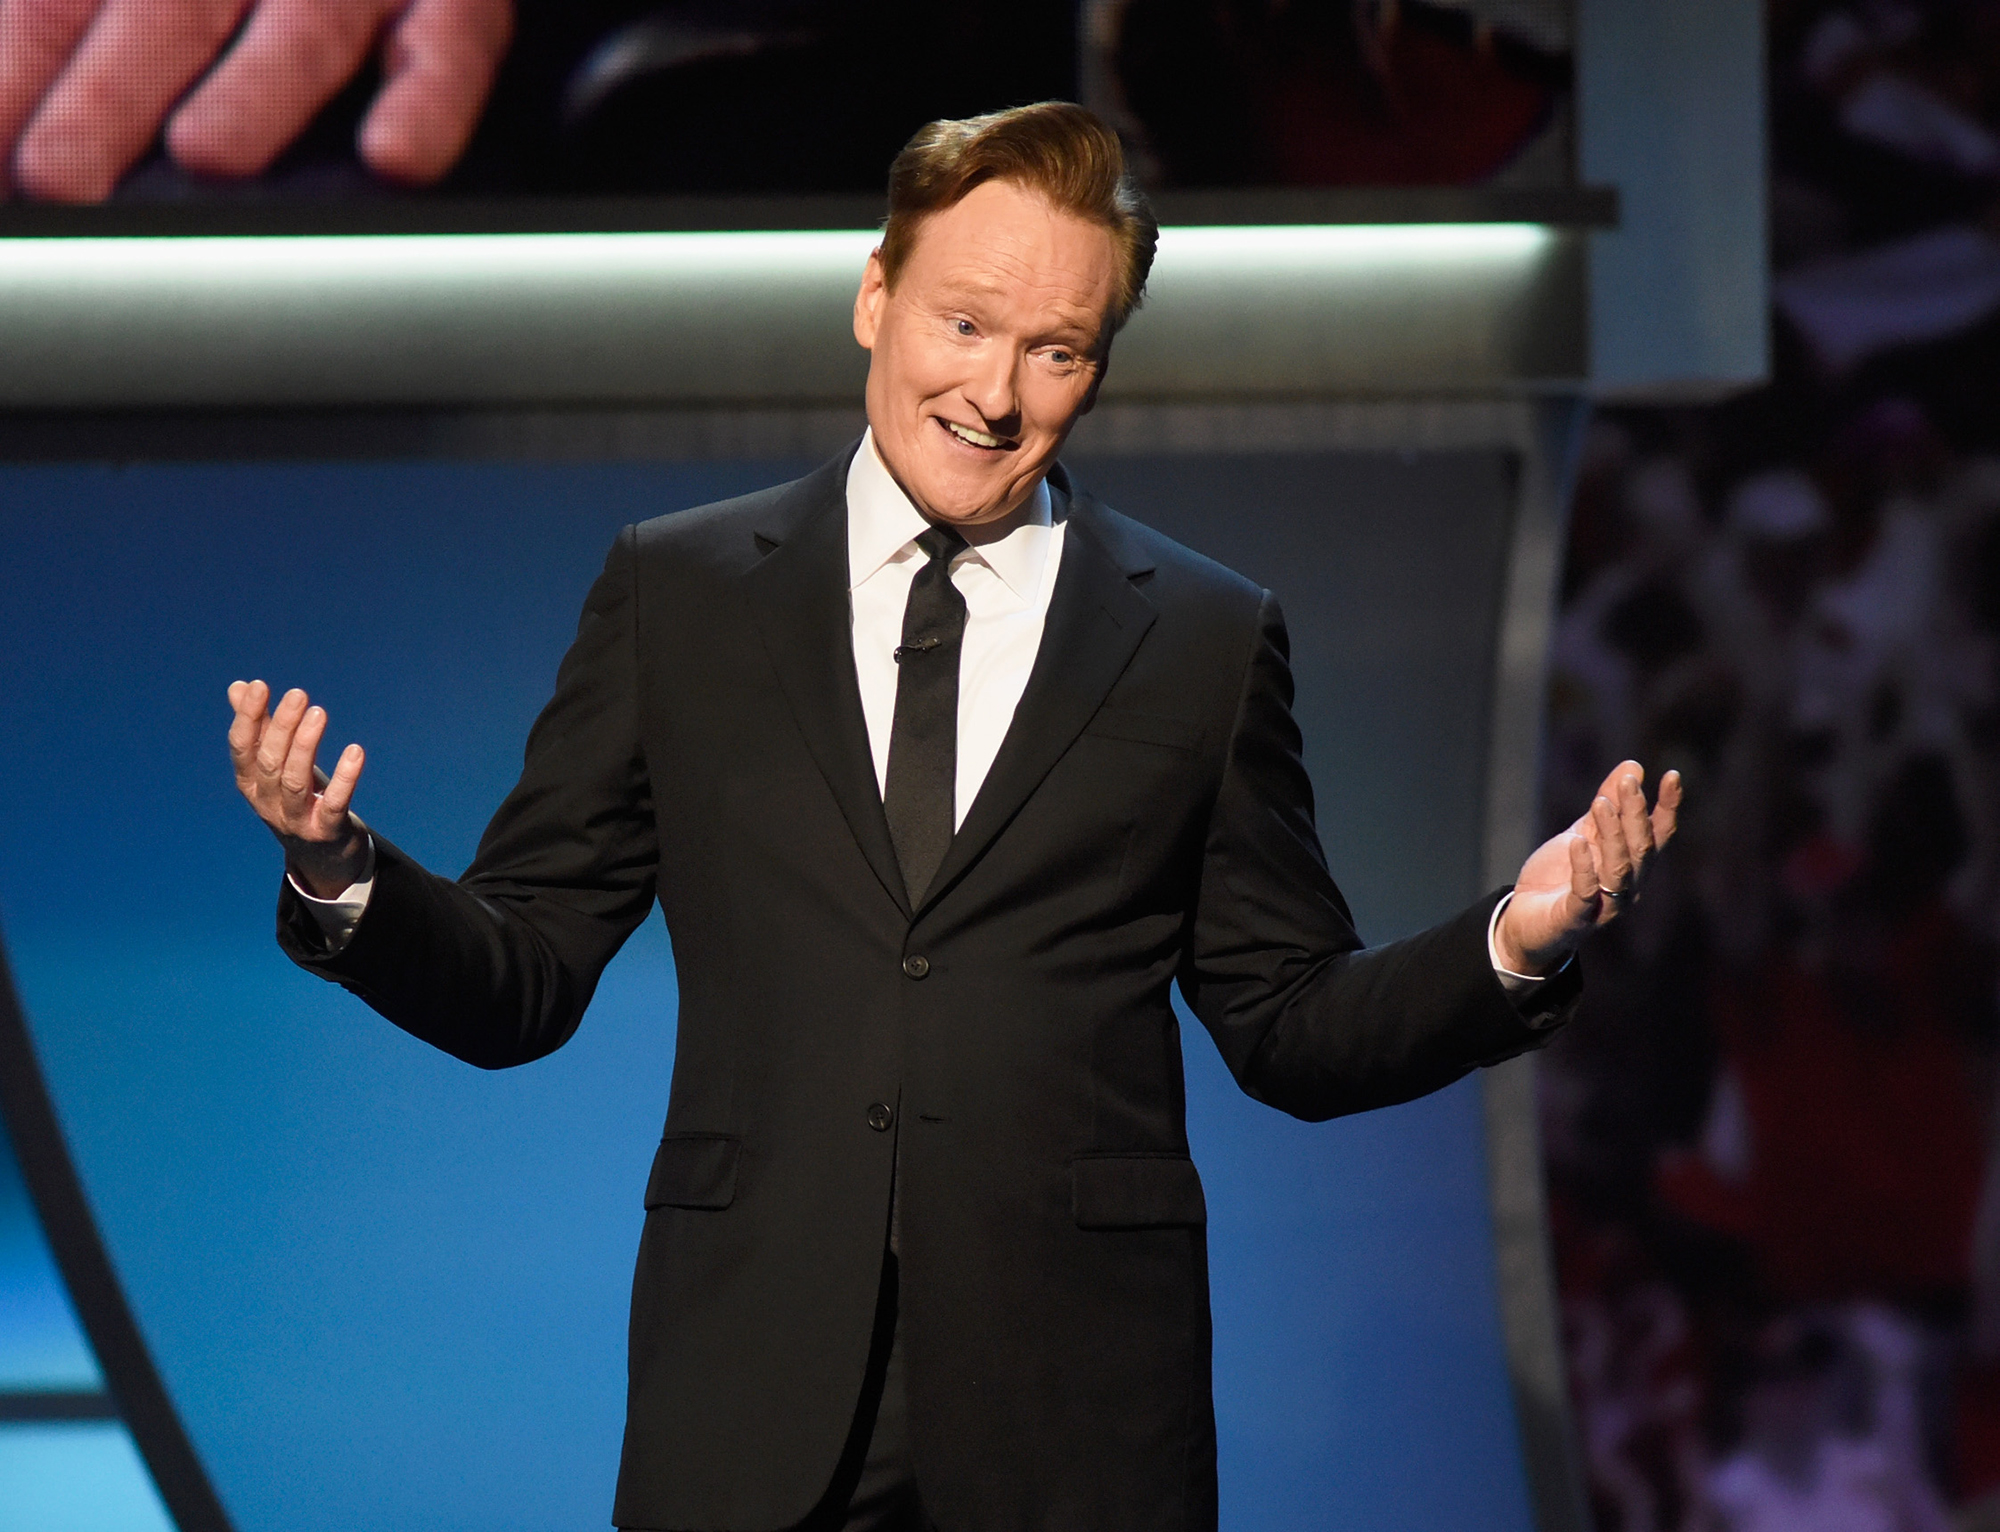 Conan O'Brien ends his long run in late night next month